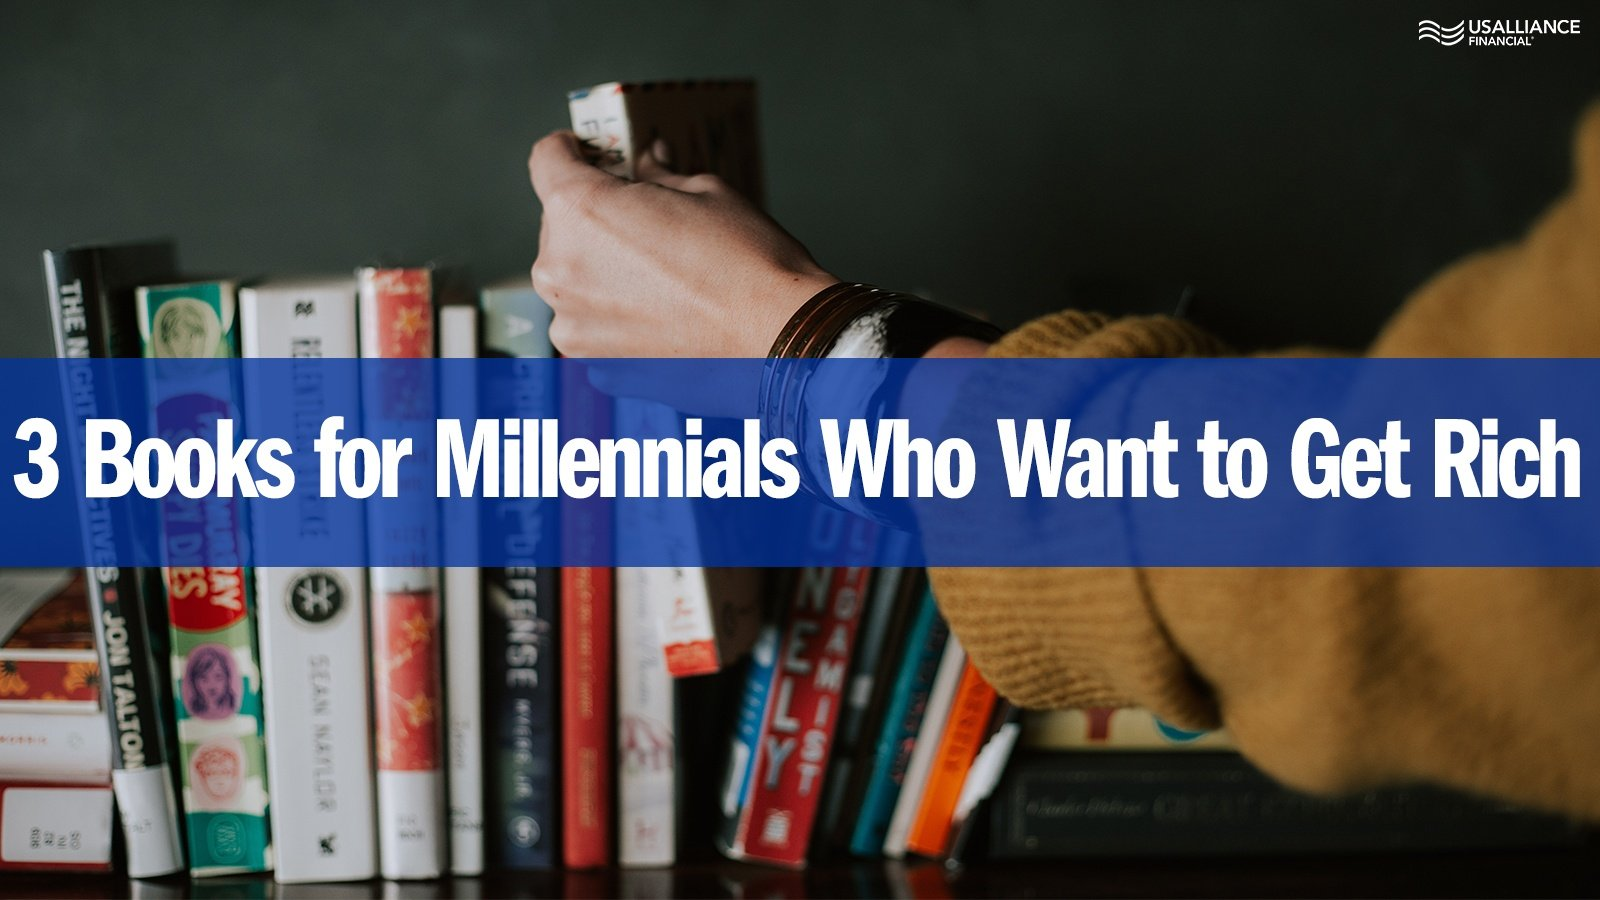 3 Books for Millennials who Want to Get Rich